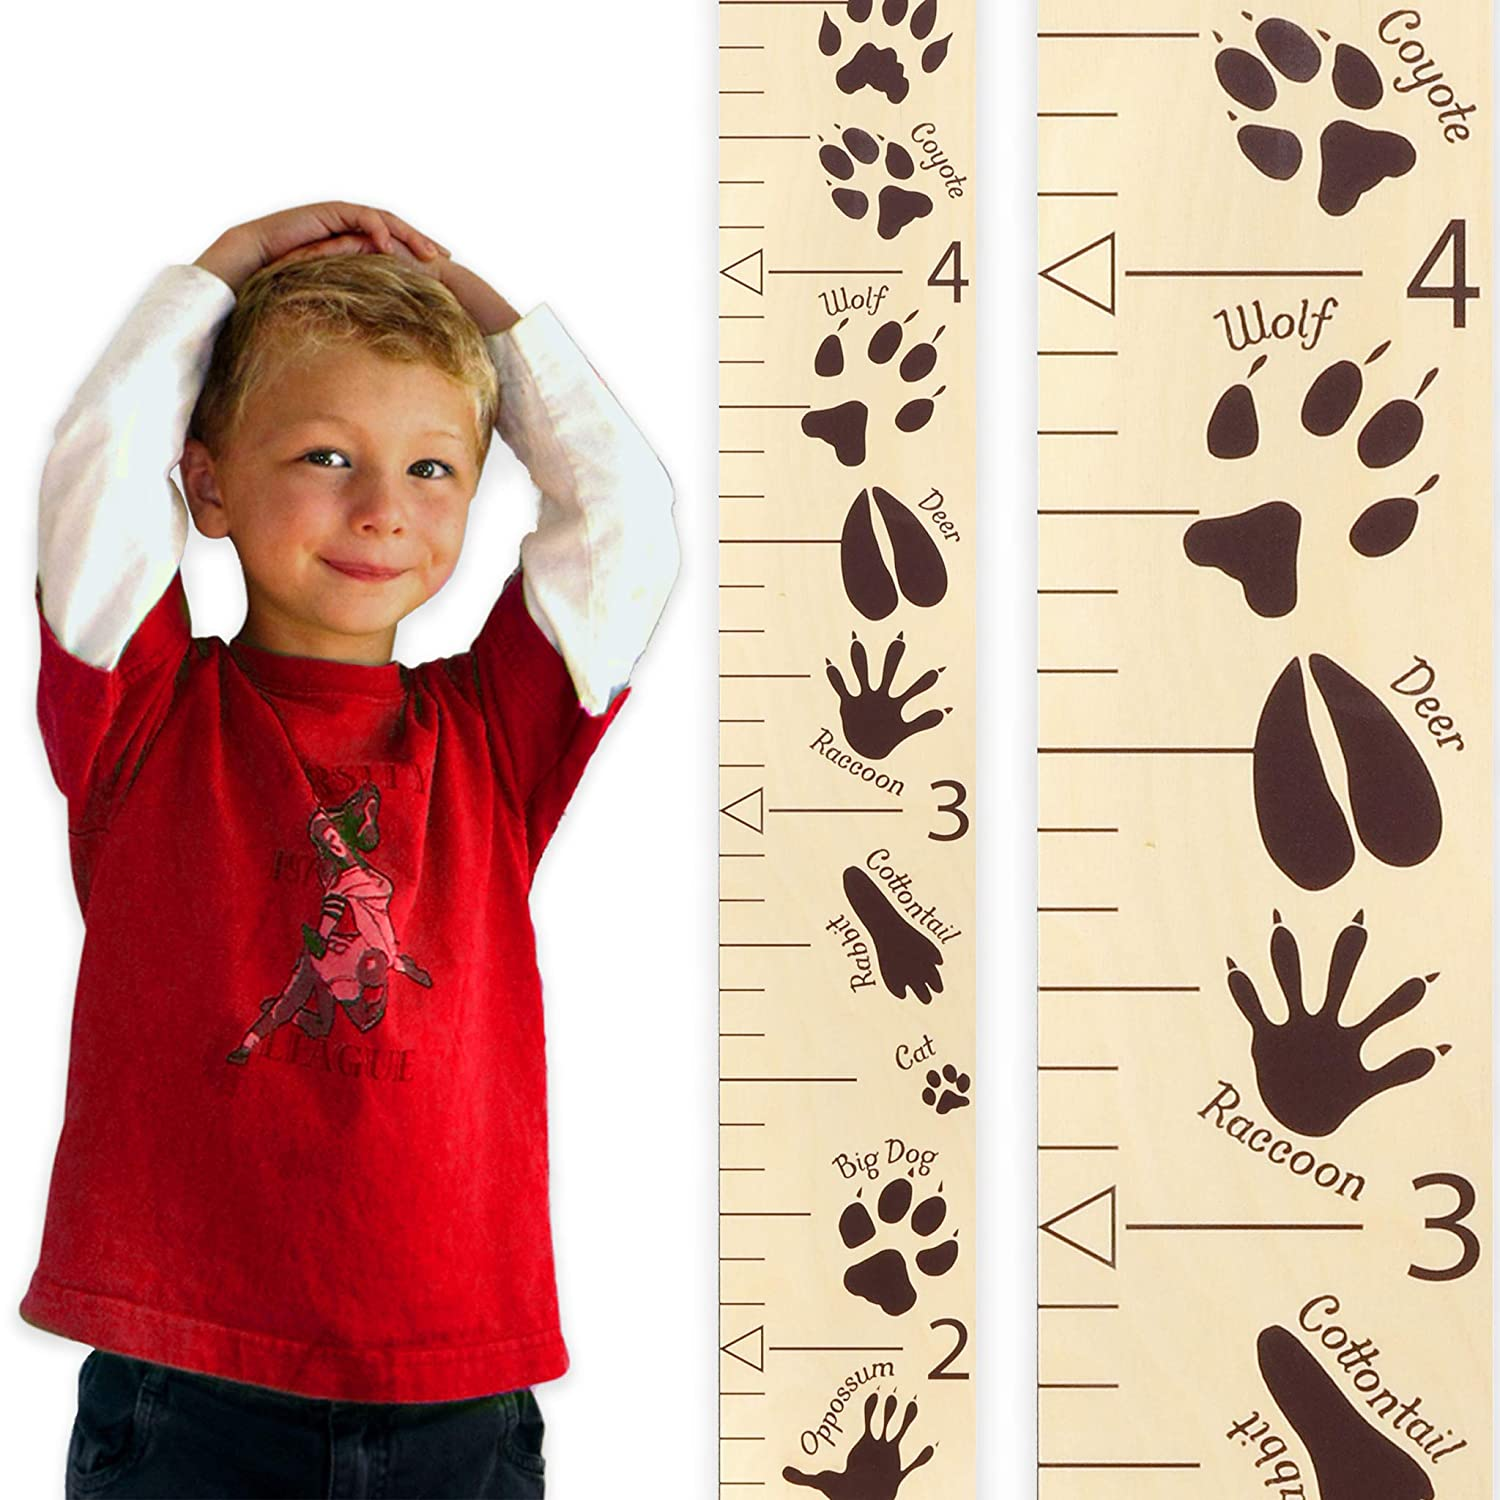 Growth Chart Art | Wooden Growth Chart Ruler for Boys | Growth Chart Ruler Kids Height Chart | Measuring Kids Height Wall Décor for Boys | Animal Tracks Gray R-PAWG